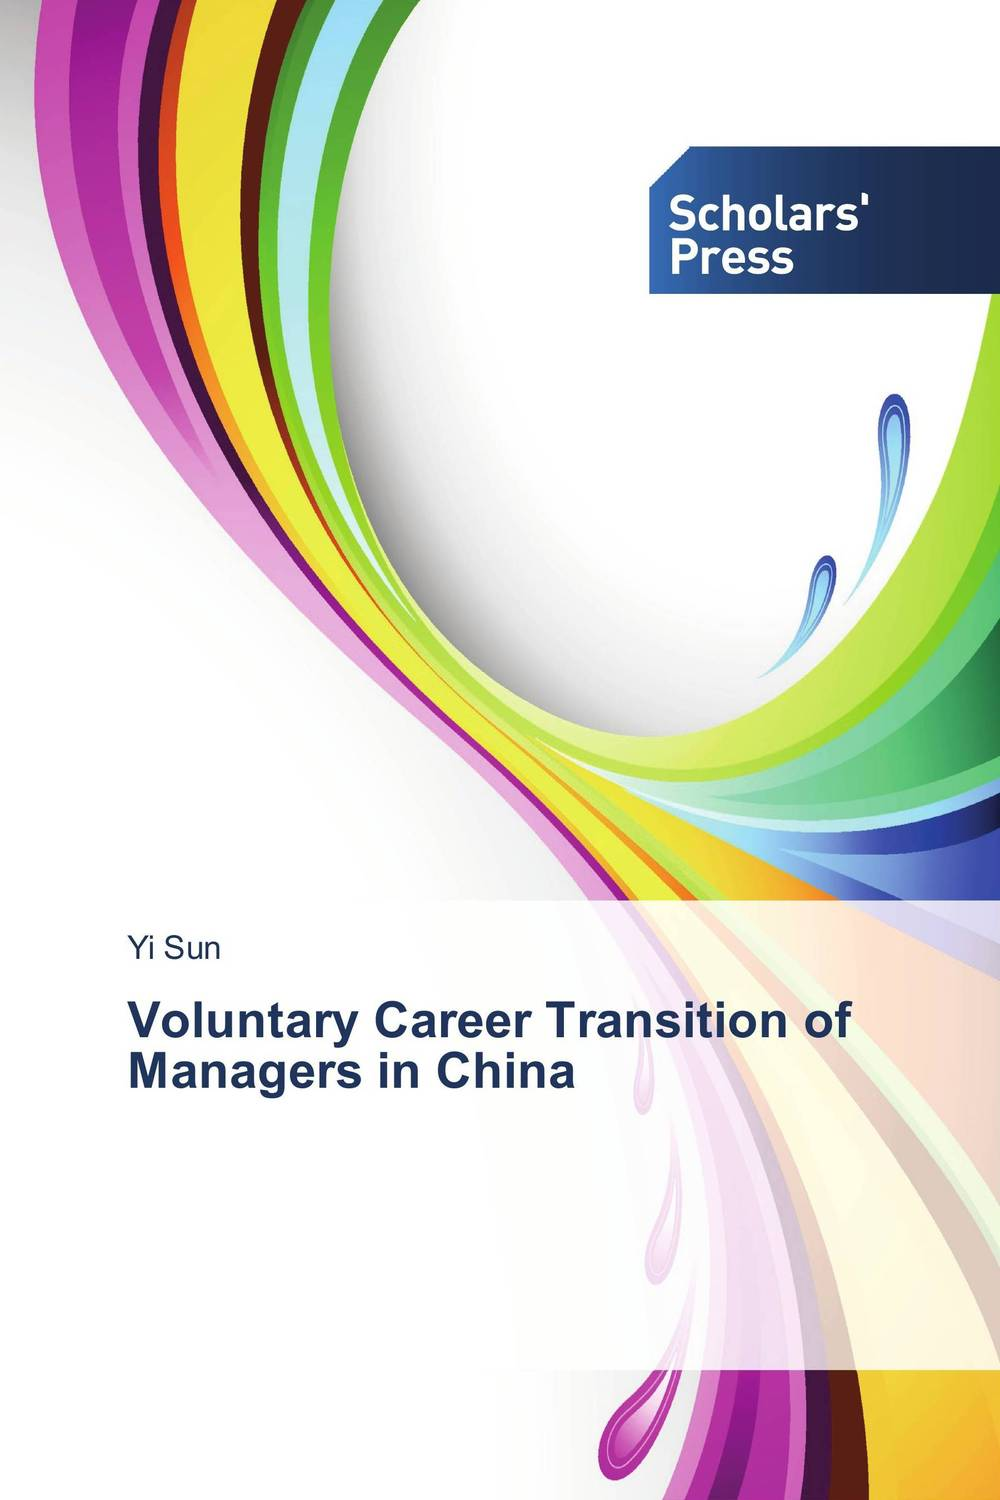 Voluntary Career Transition of Managers in China